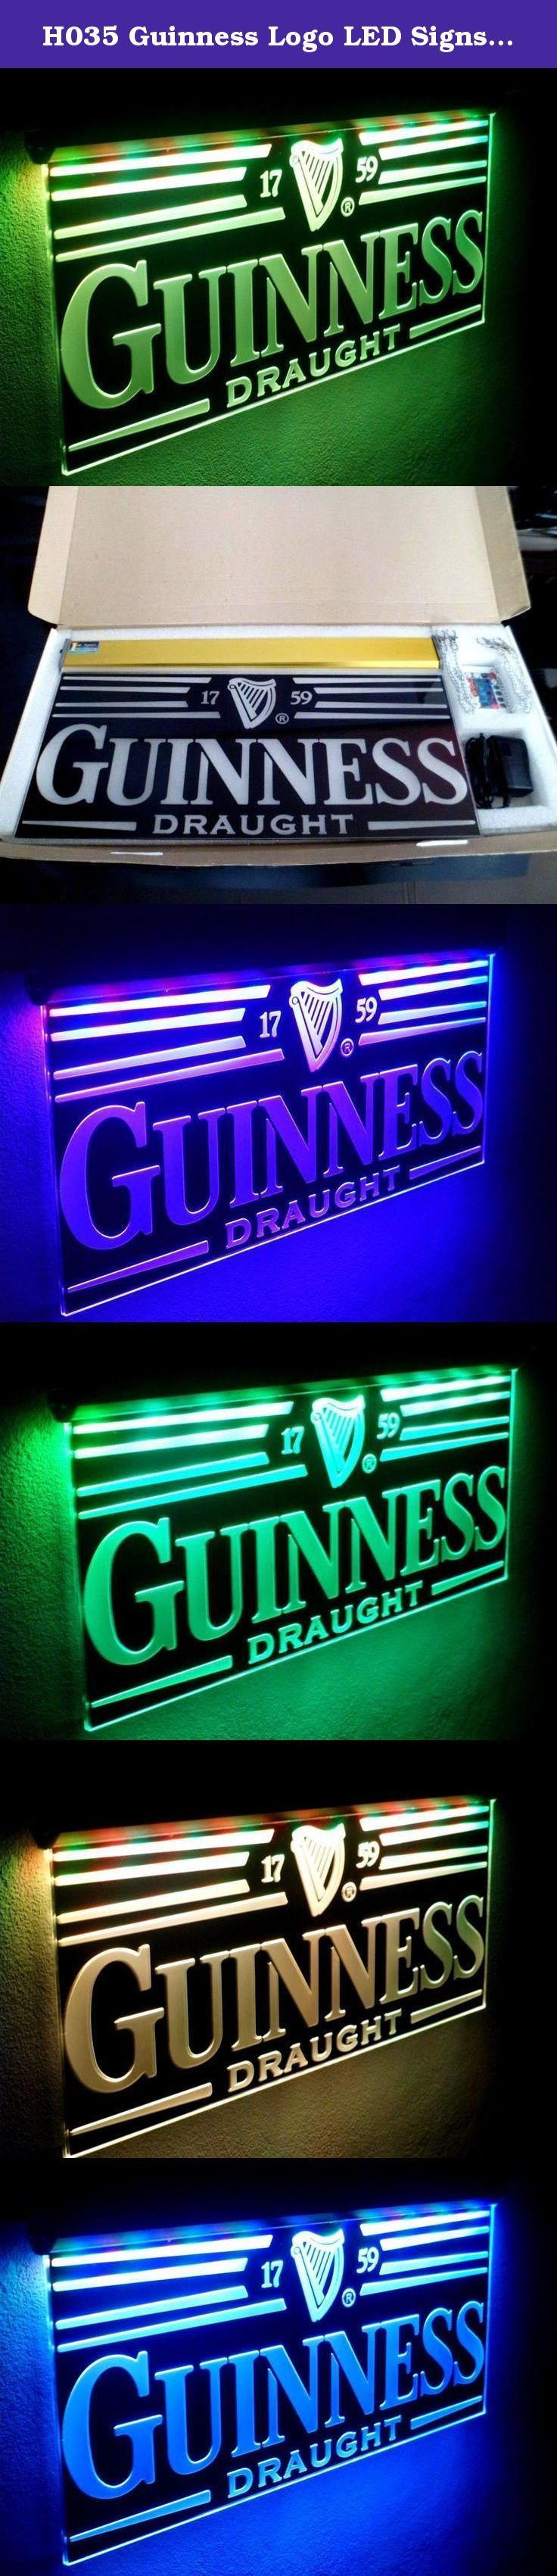 "H035 Guinness Logo LED Signs Open Bar Neon Light Large Quality Animated Flashing by Led Sport Logo Signs. ""NEW""Style LED Light Sign by Led Sport Logo Signs Comes Complete With Everything You Will Need To Use Immediately. The Bright Glow Of LED Signs Can Attract Customers Like Nothing Else. LED Signage Will Make A Huge Impact On Your Customers. LED Light Signs Can Be Left on 24 Hours a Day, Just Plug It In and Let It Attract Business For You. It's a lot more cost effective then the..."